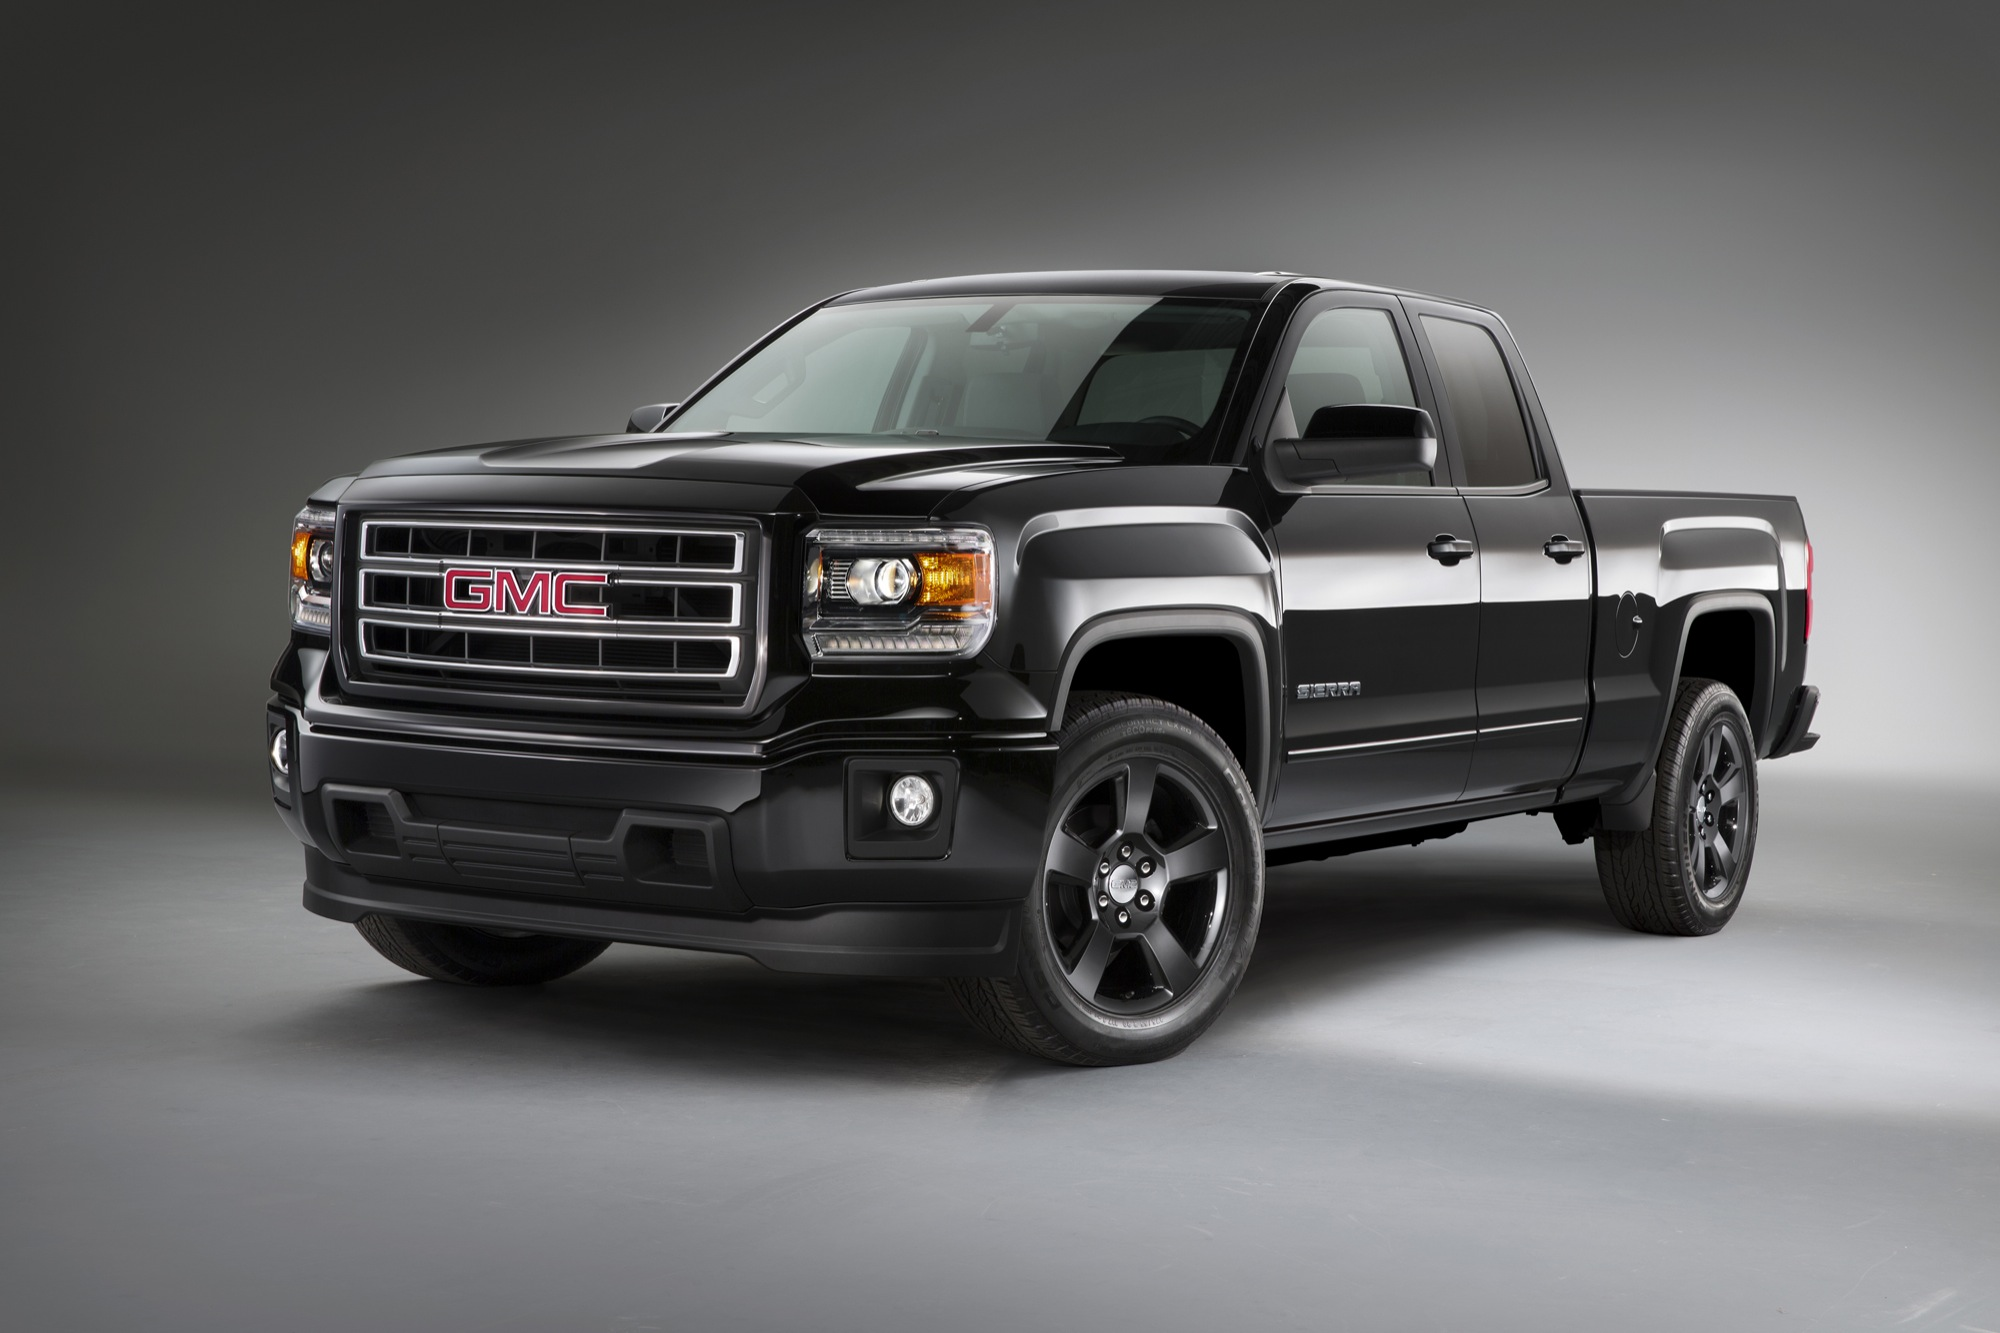 GMC Sierra Elevation Edition photo 129400